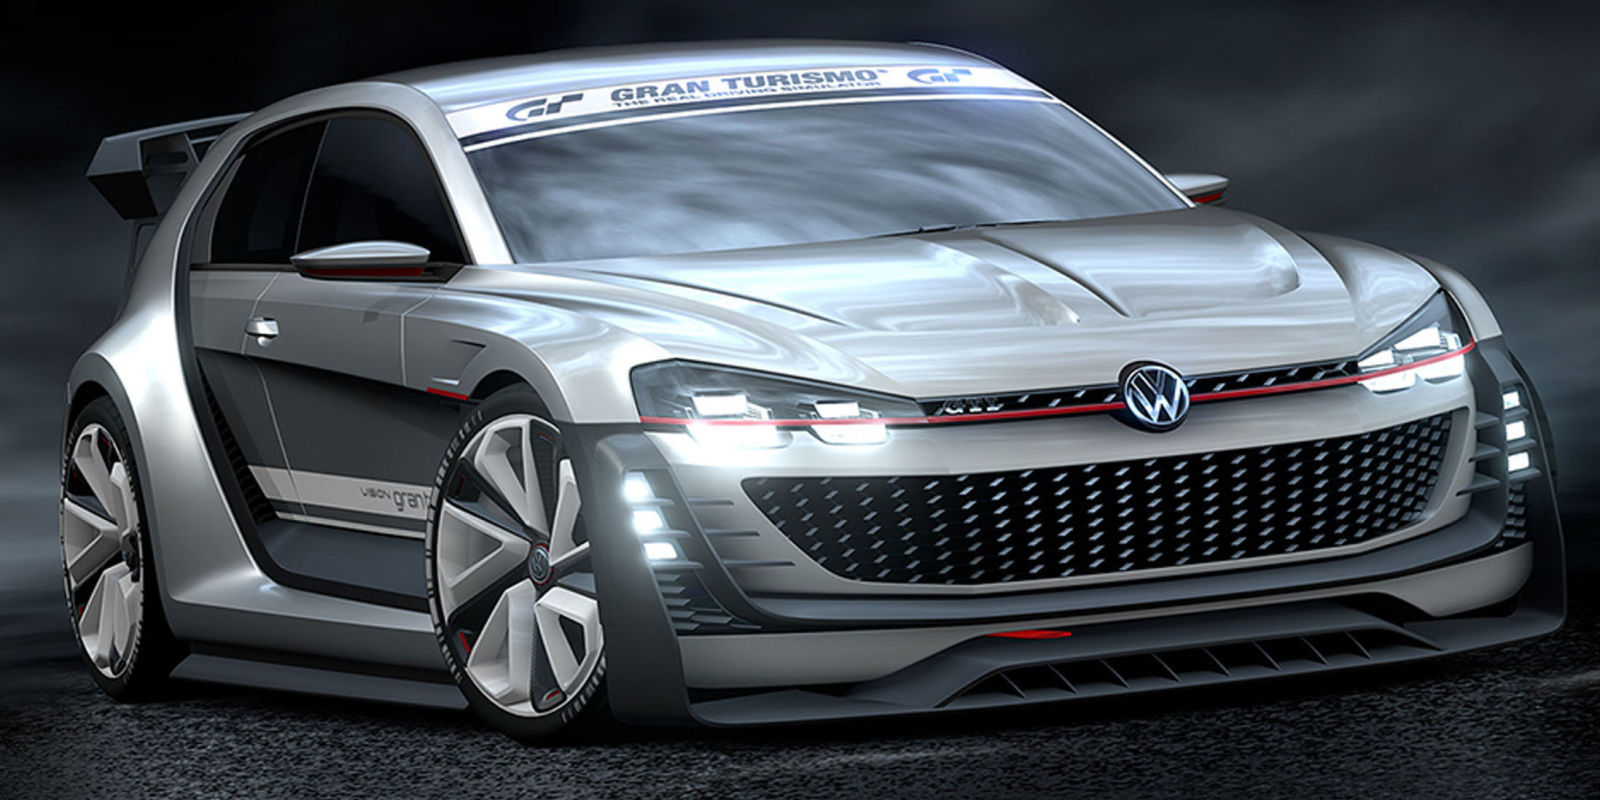 Golf Gti Wiki >> VW GTI Supersport Vision GT concept coming to GT 6